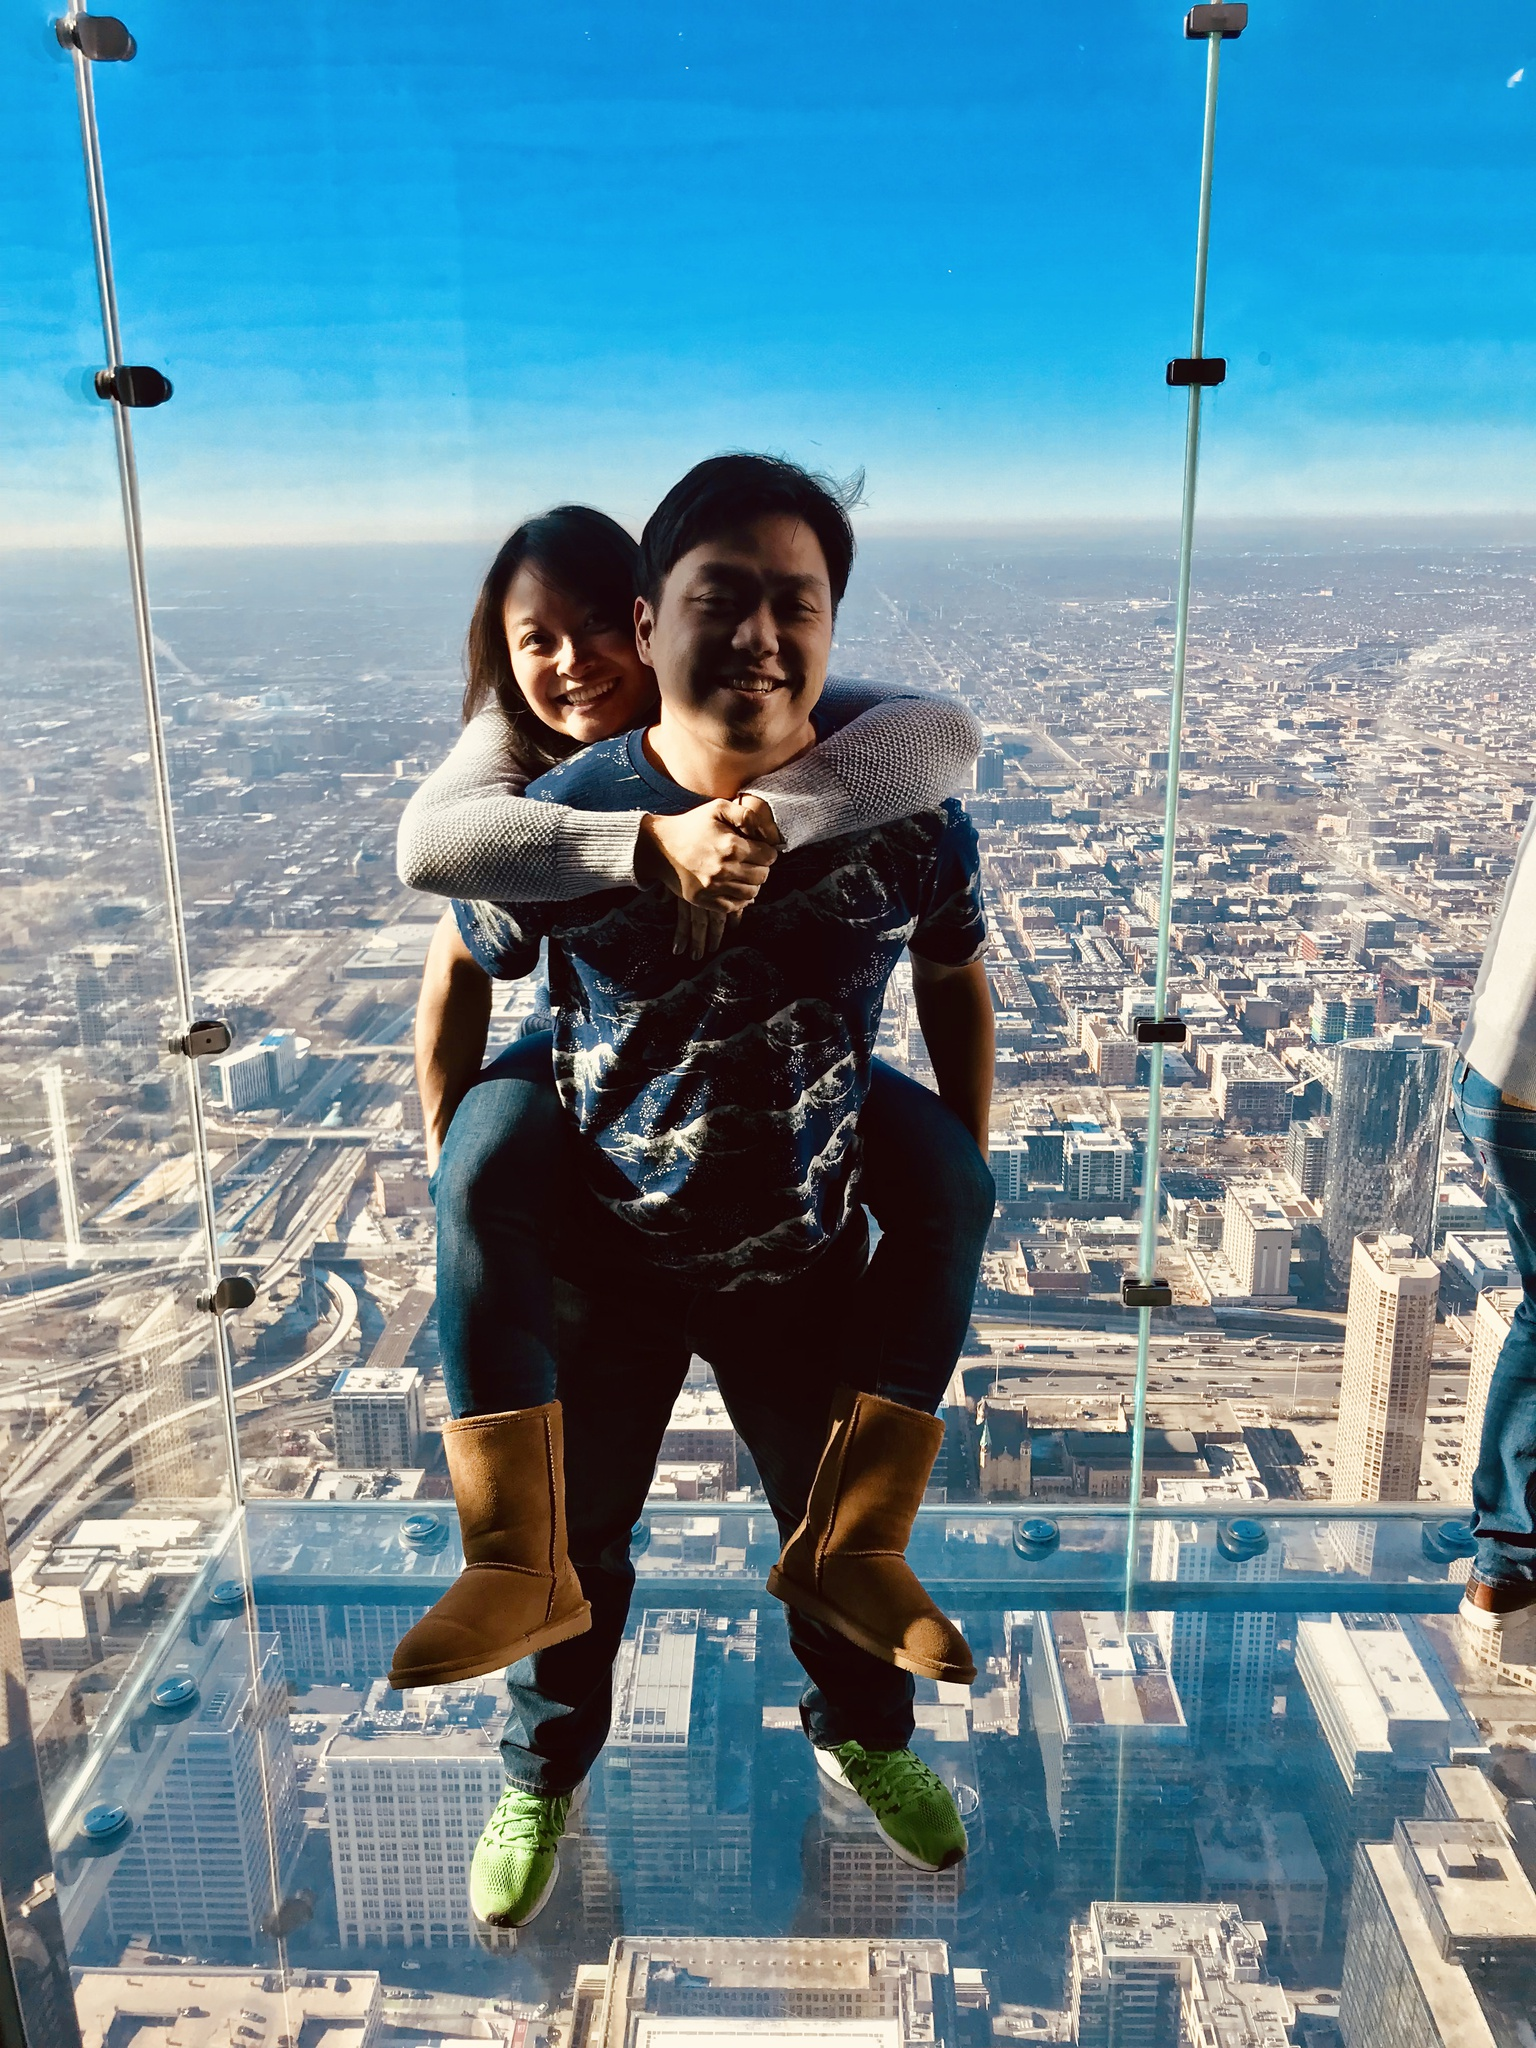 Being brave on the Skydeck of the Sears Tower (aka Willis Tower) in Chicago